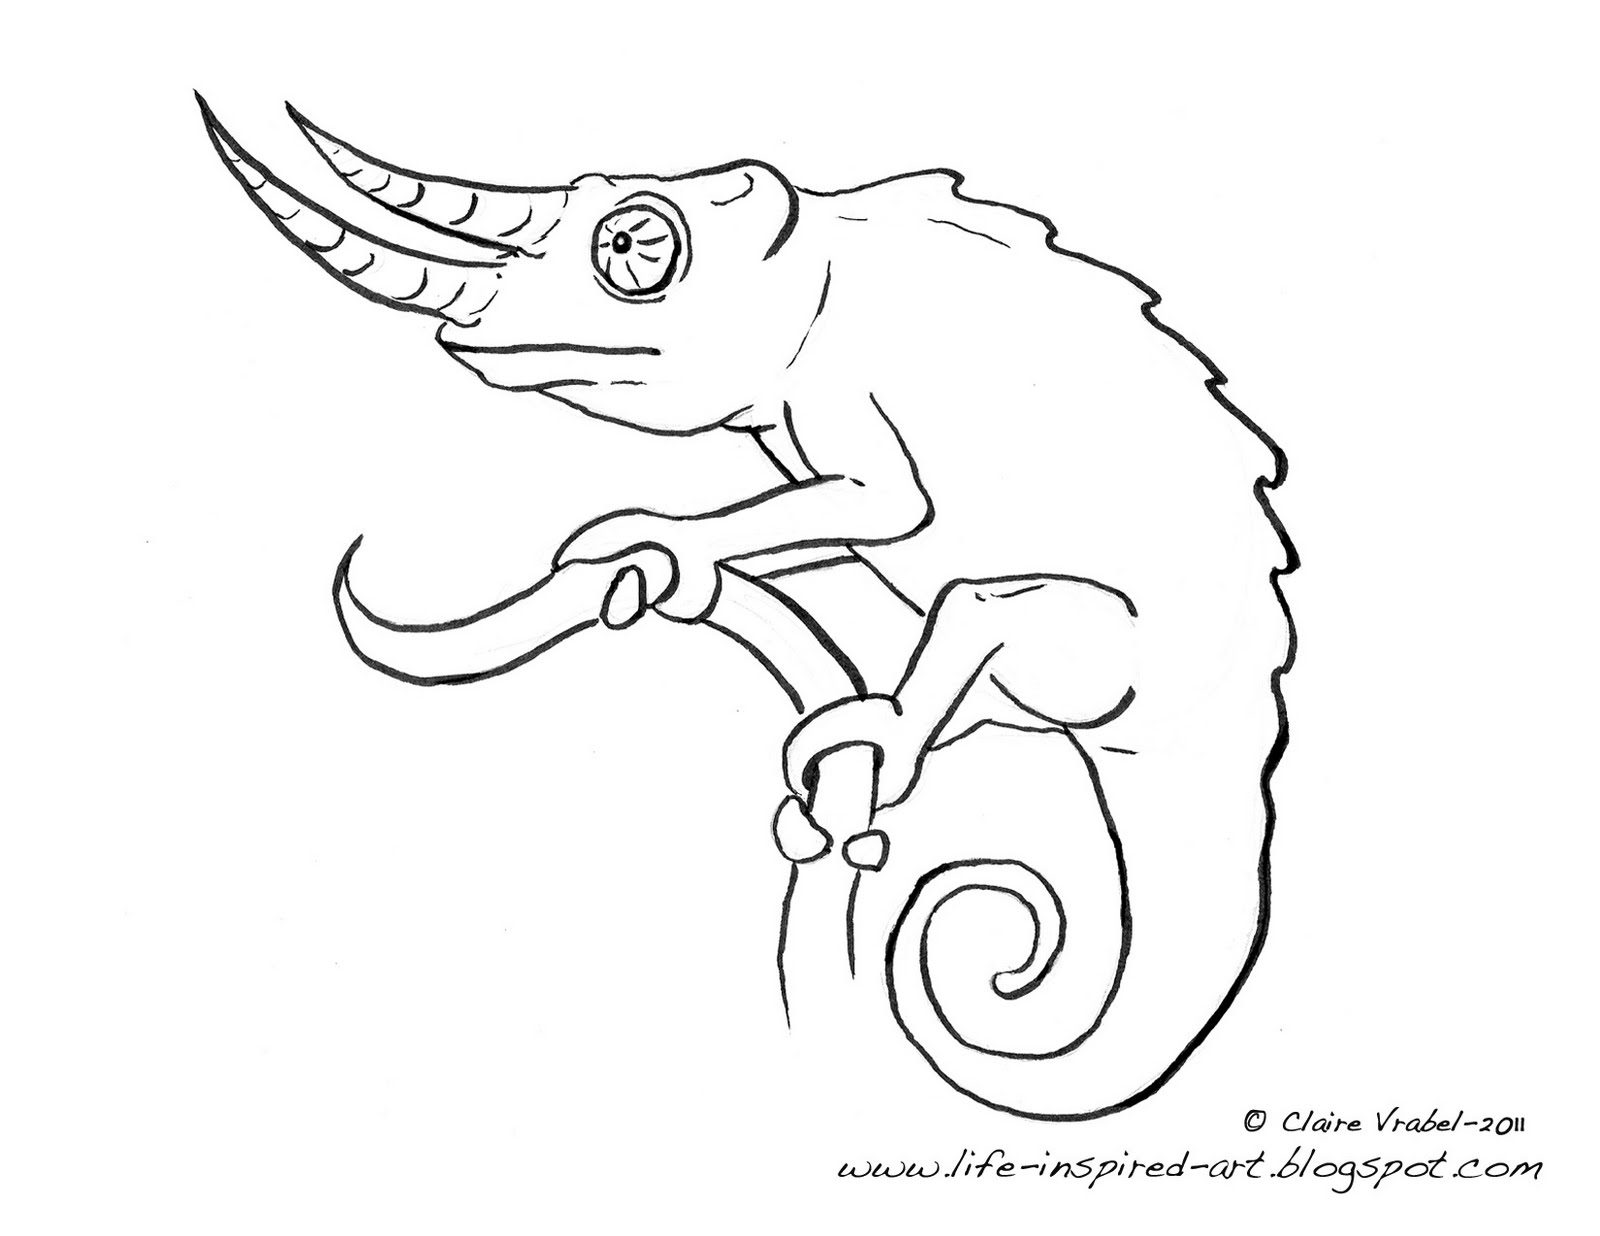 chameleon coloring pages free | Life Inspired Art: How to Draw a Chameleon!